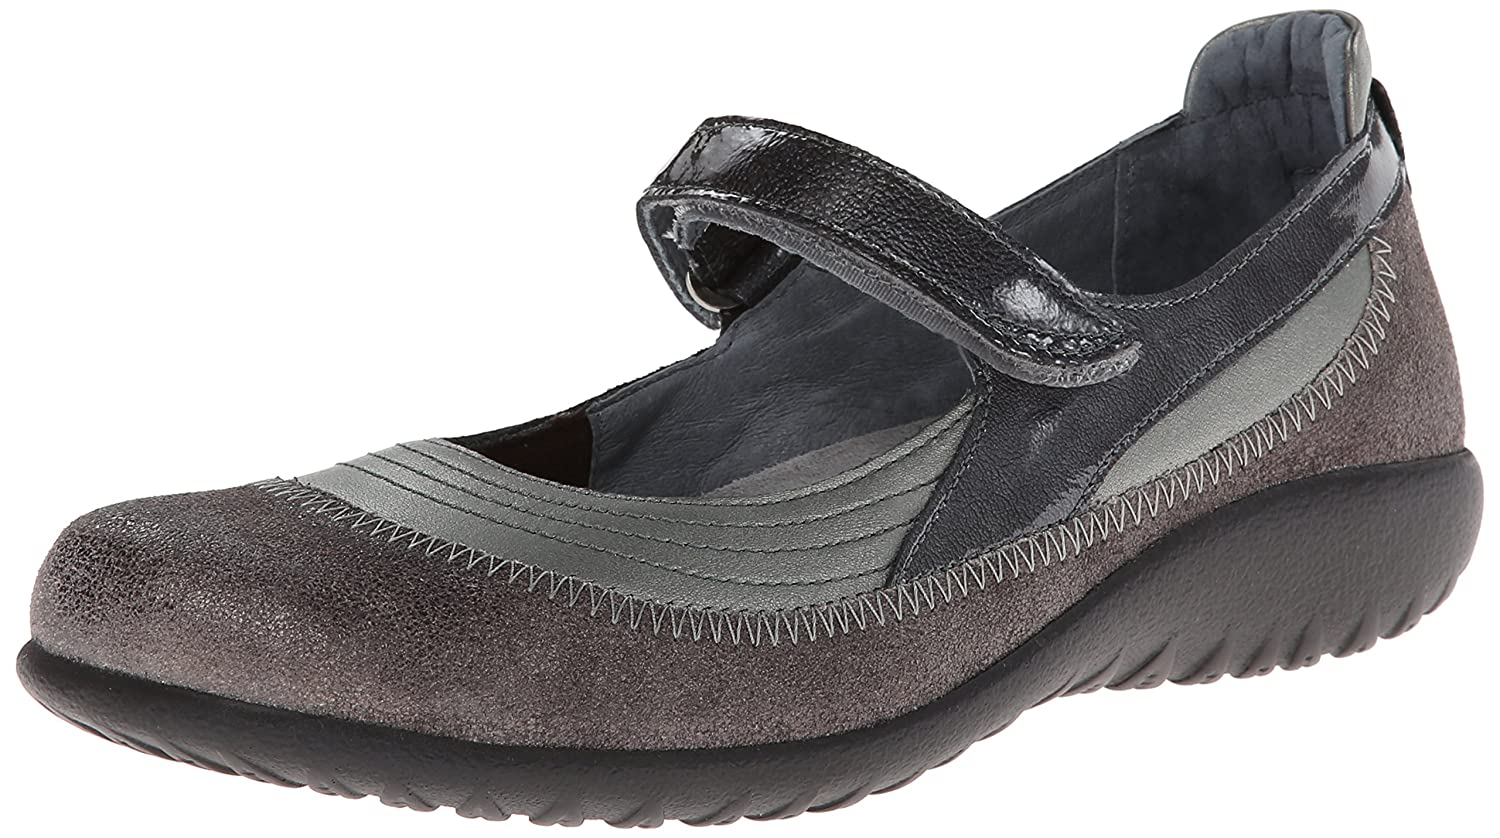 NAOT Footwear Women's Kirei Mary Jane Flat B00IFPOO1S 41 EU/9.5 - 10 M US|Sterling Leather/Gray Shimmer Leather/Gray Patent Leather